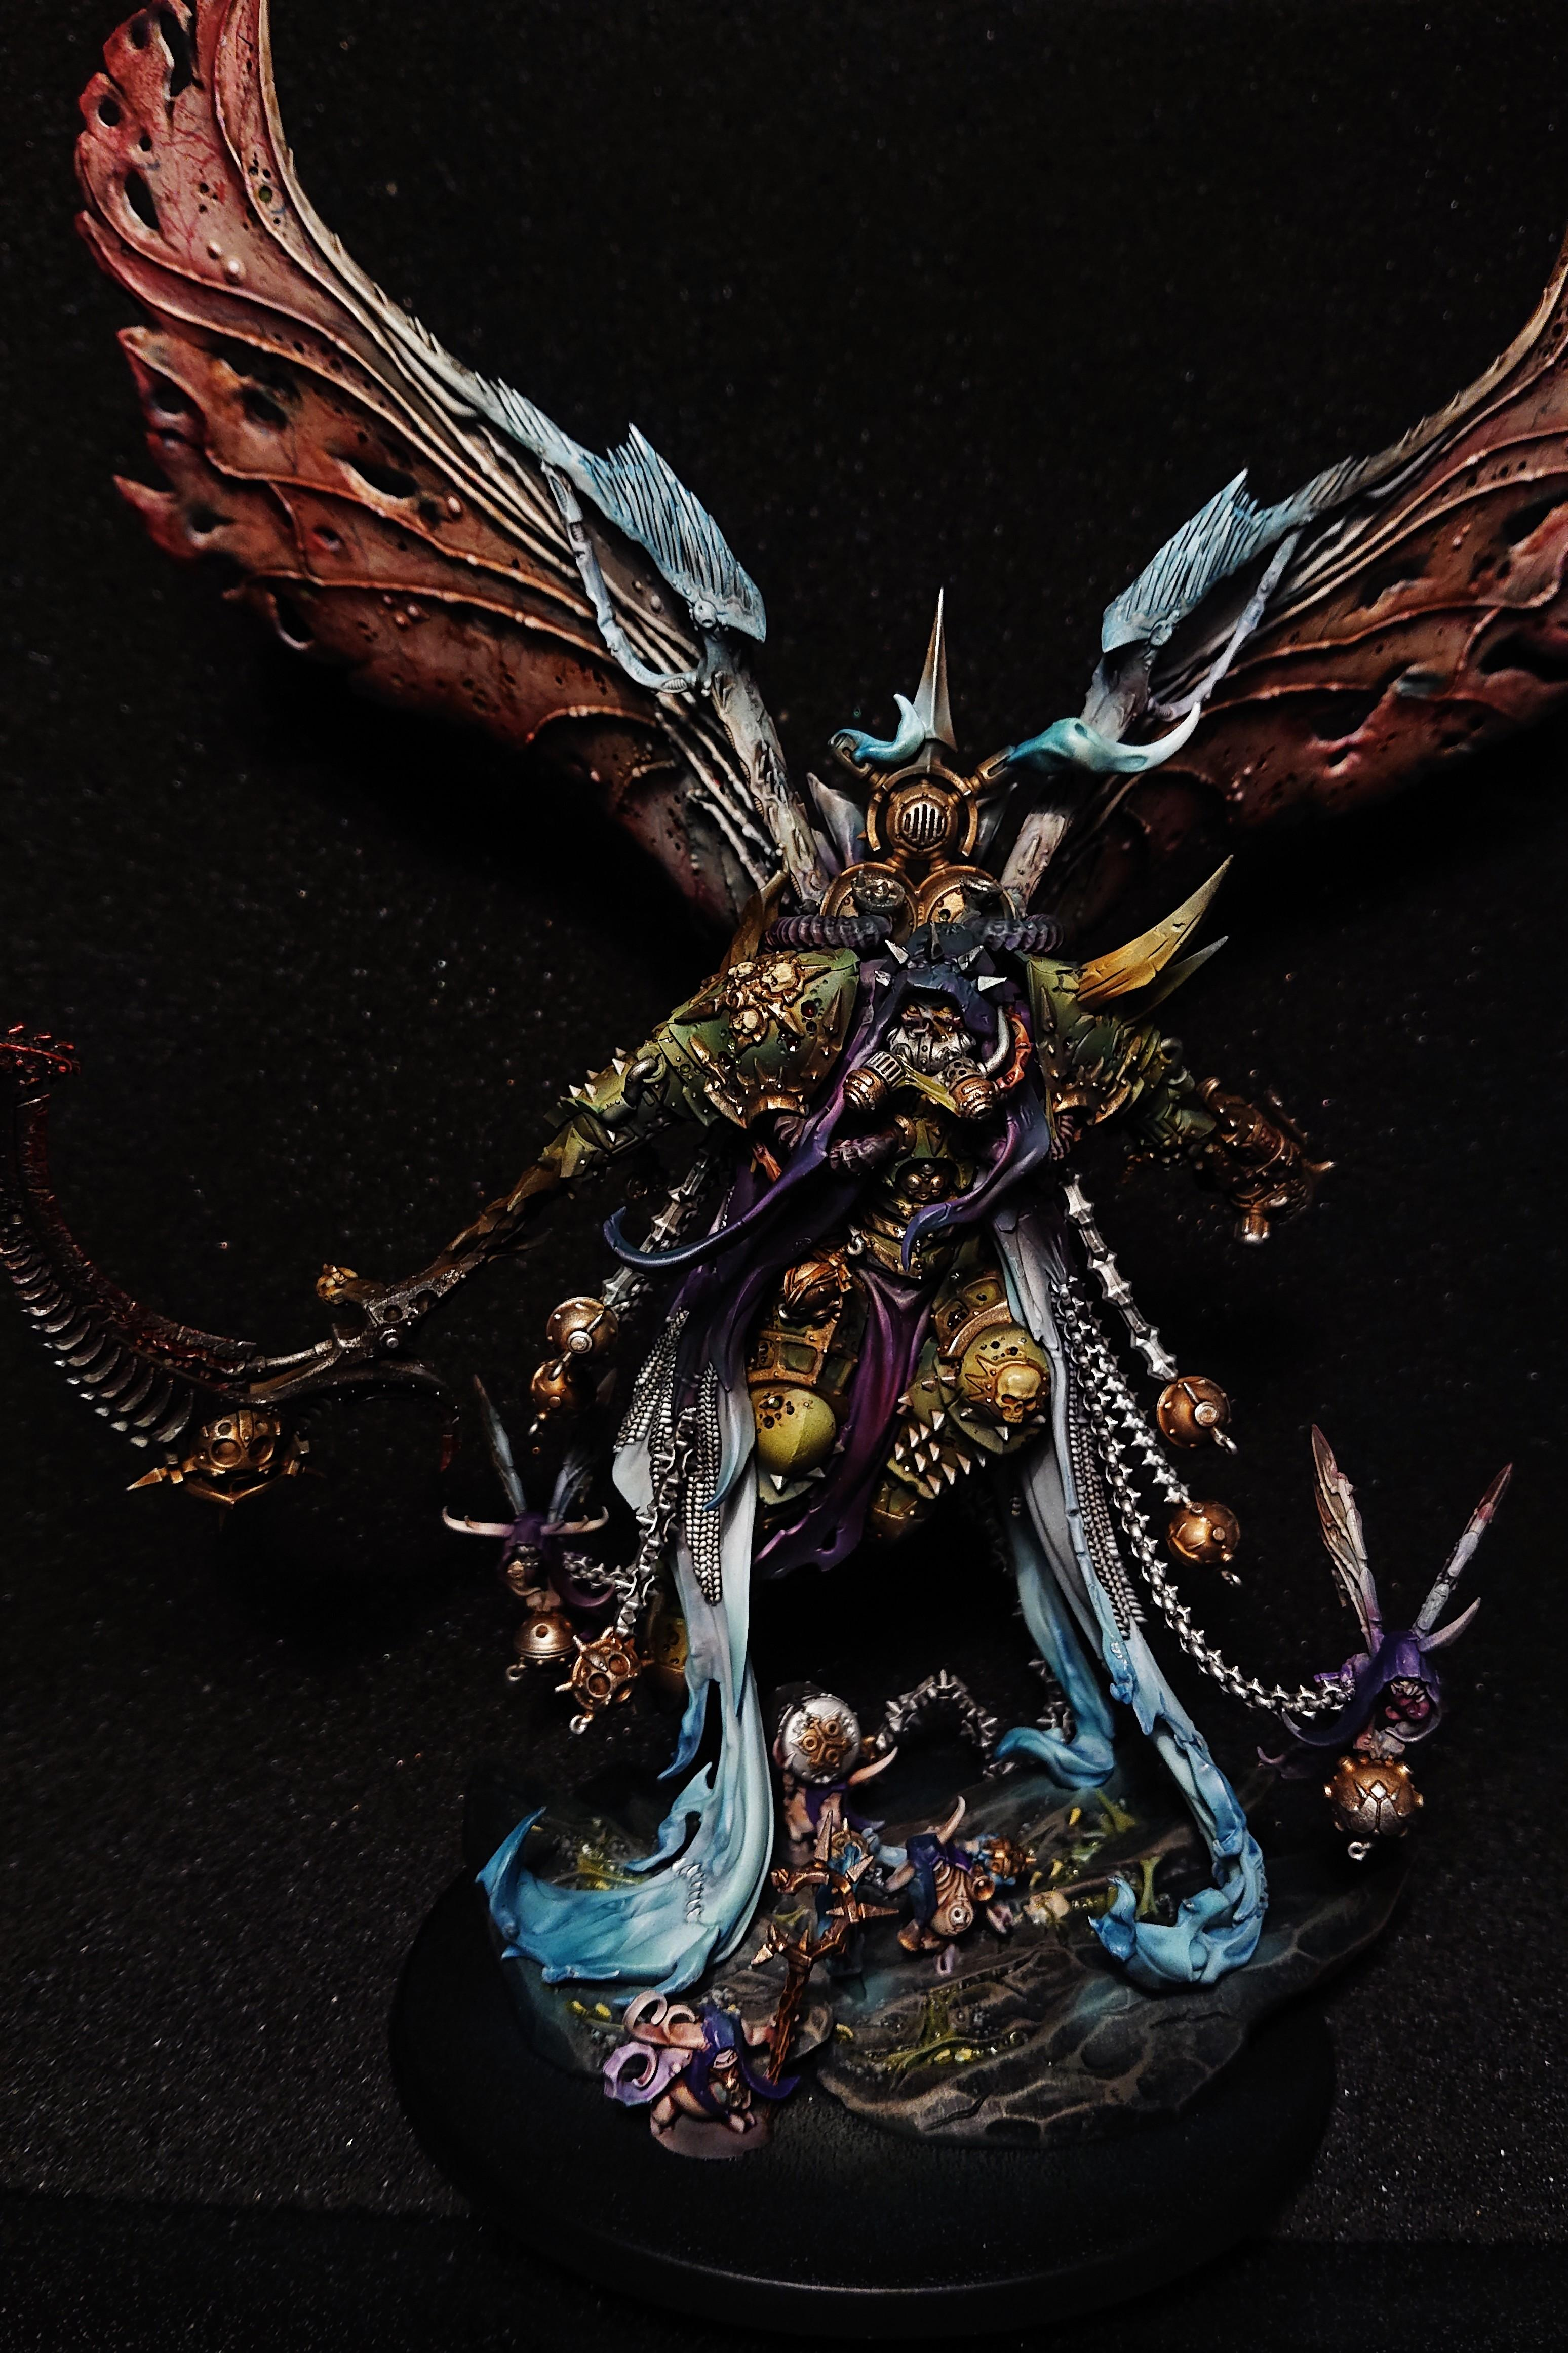 Angel, Chaos, Daemons, Death Guard, Mortarion, Nurgle, Primark, Winged